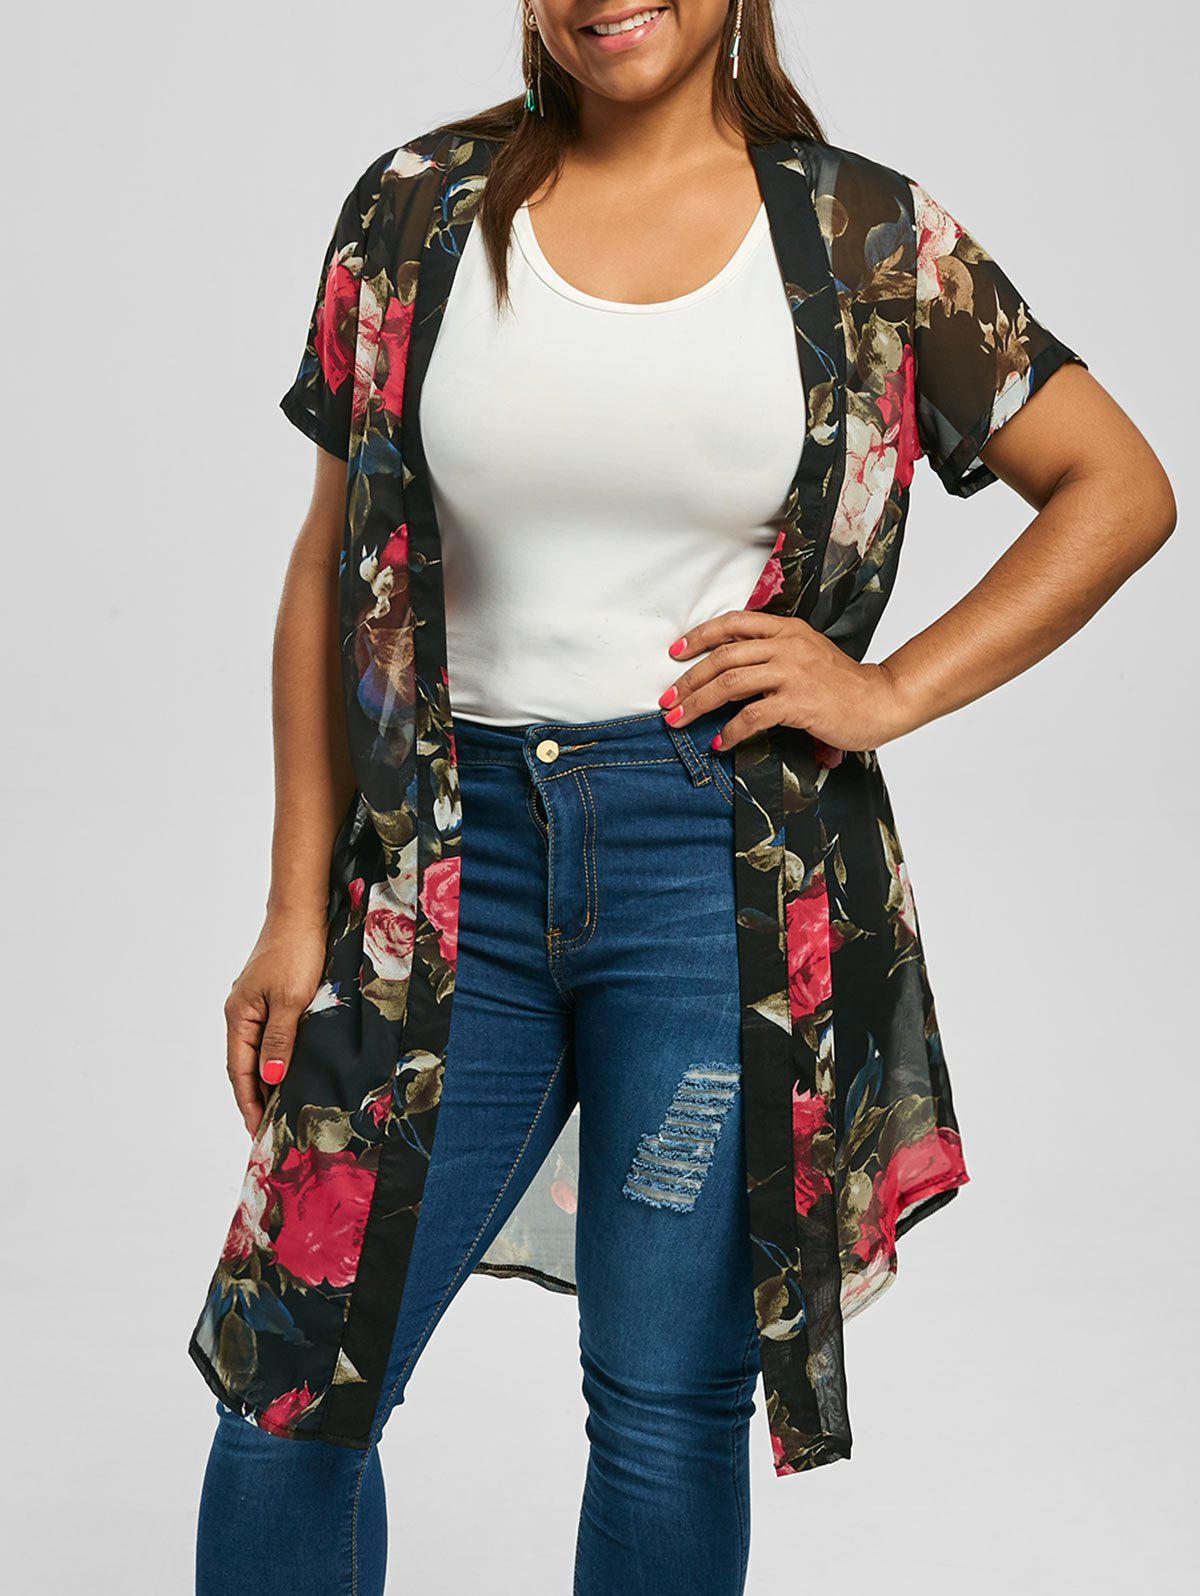 Floral Long Plus Size Kimono TopWOMEN<br><br>Size: 5XL; Color: BLACK; Material: Polyester; Shirt Length: Long; Sleeve Length: Short; Collar: Collarless; Style: Fashion; Season: Summer; Pattern Type: Floral; Weight: 0.2000kg; Package Contents: 1 x Top;